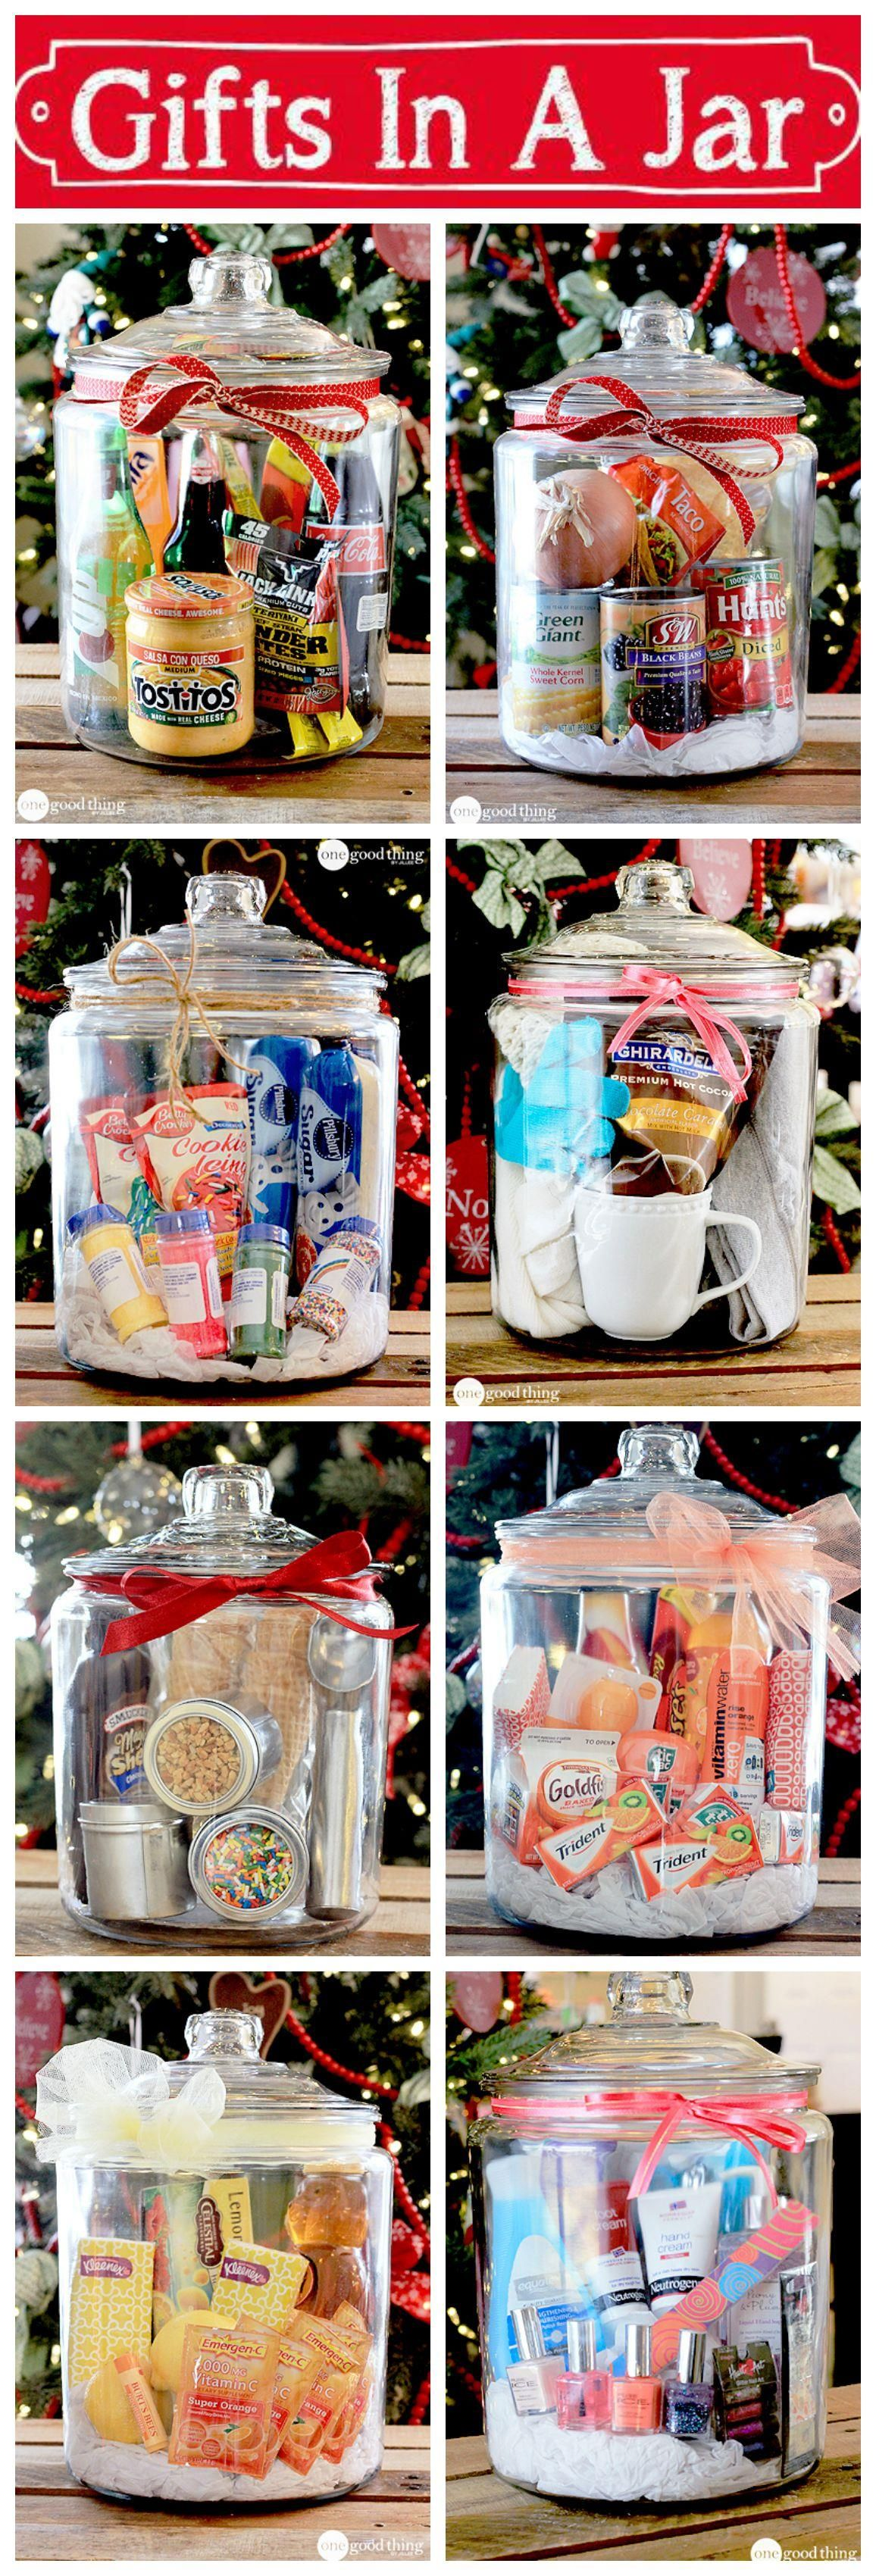 Gifts in a Jar | gift ideas | Pinterest | Gifts, Gift baskets and ...